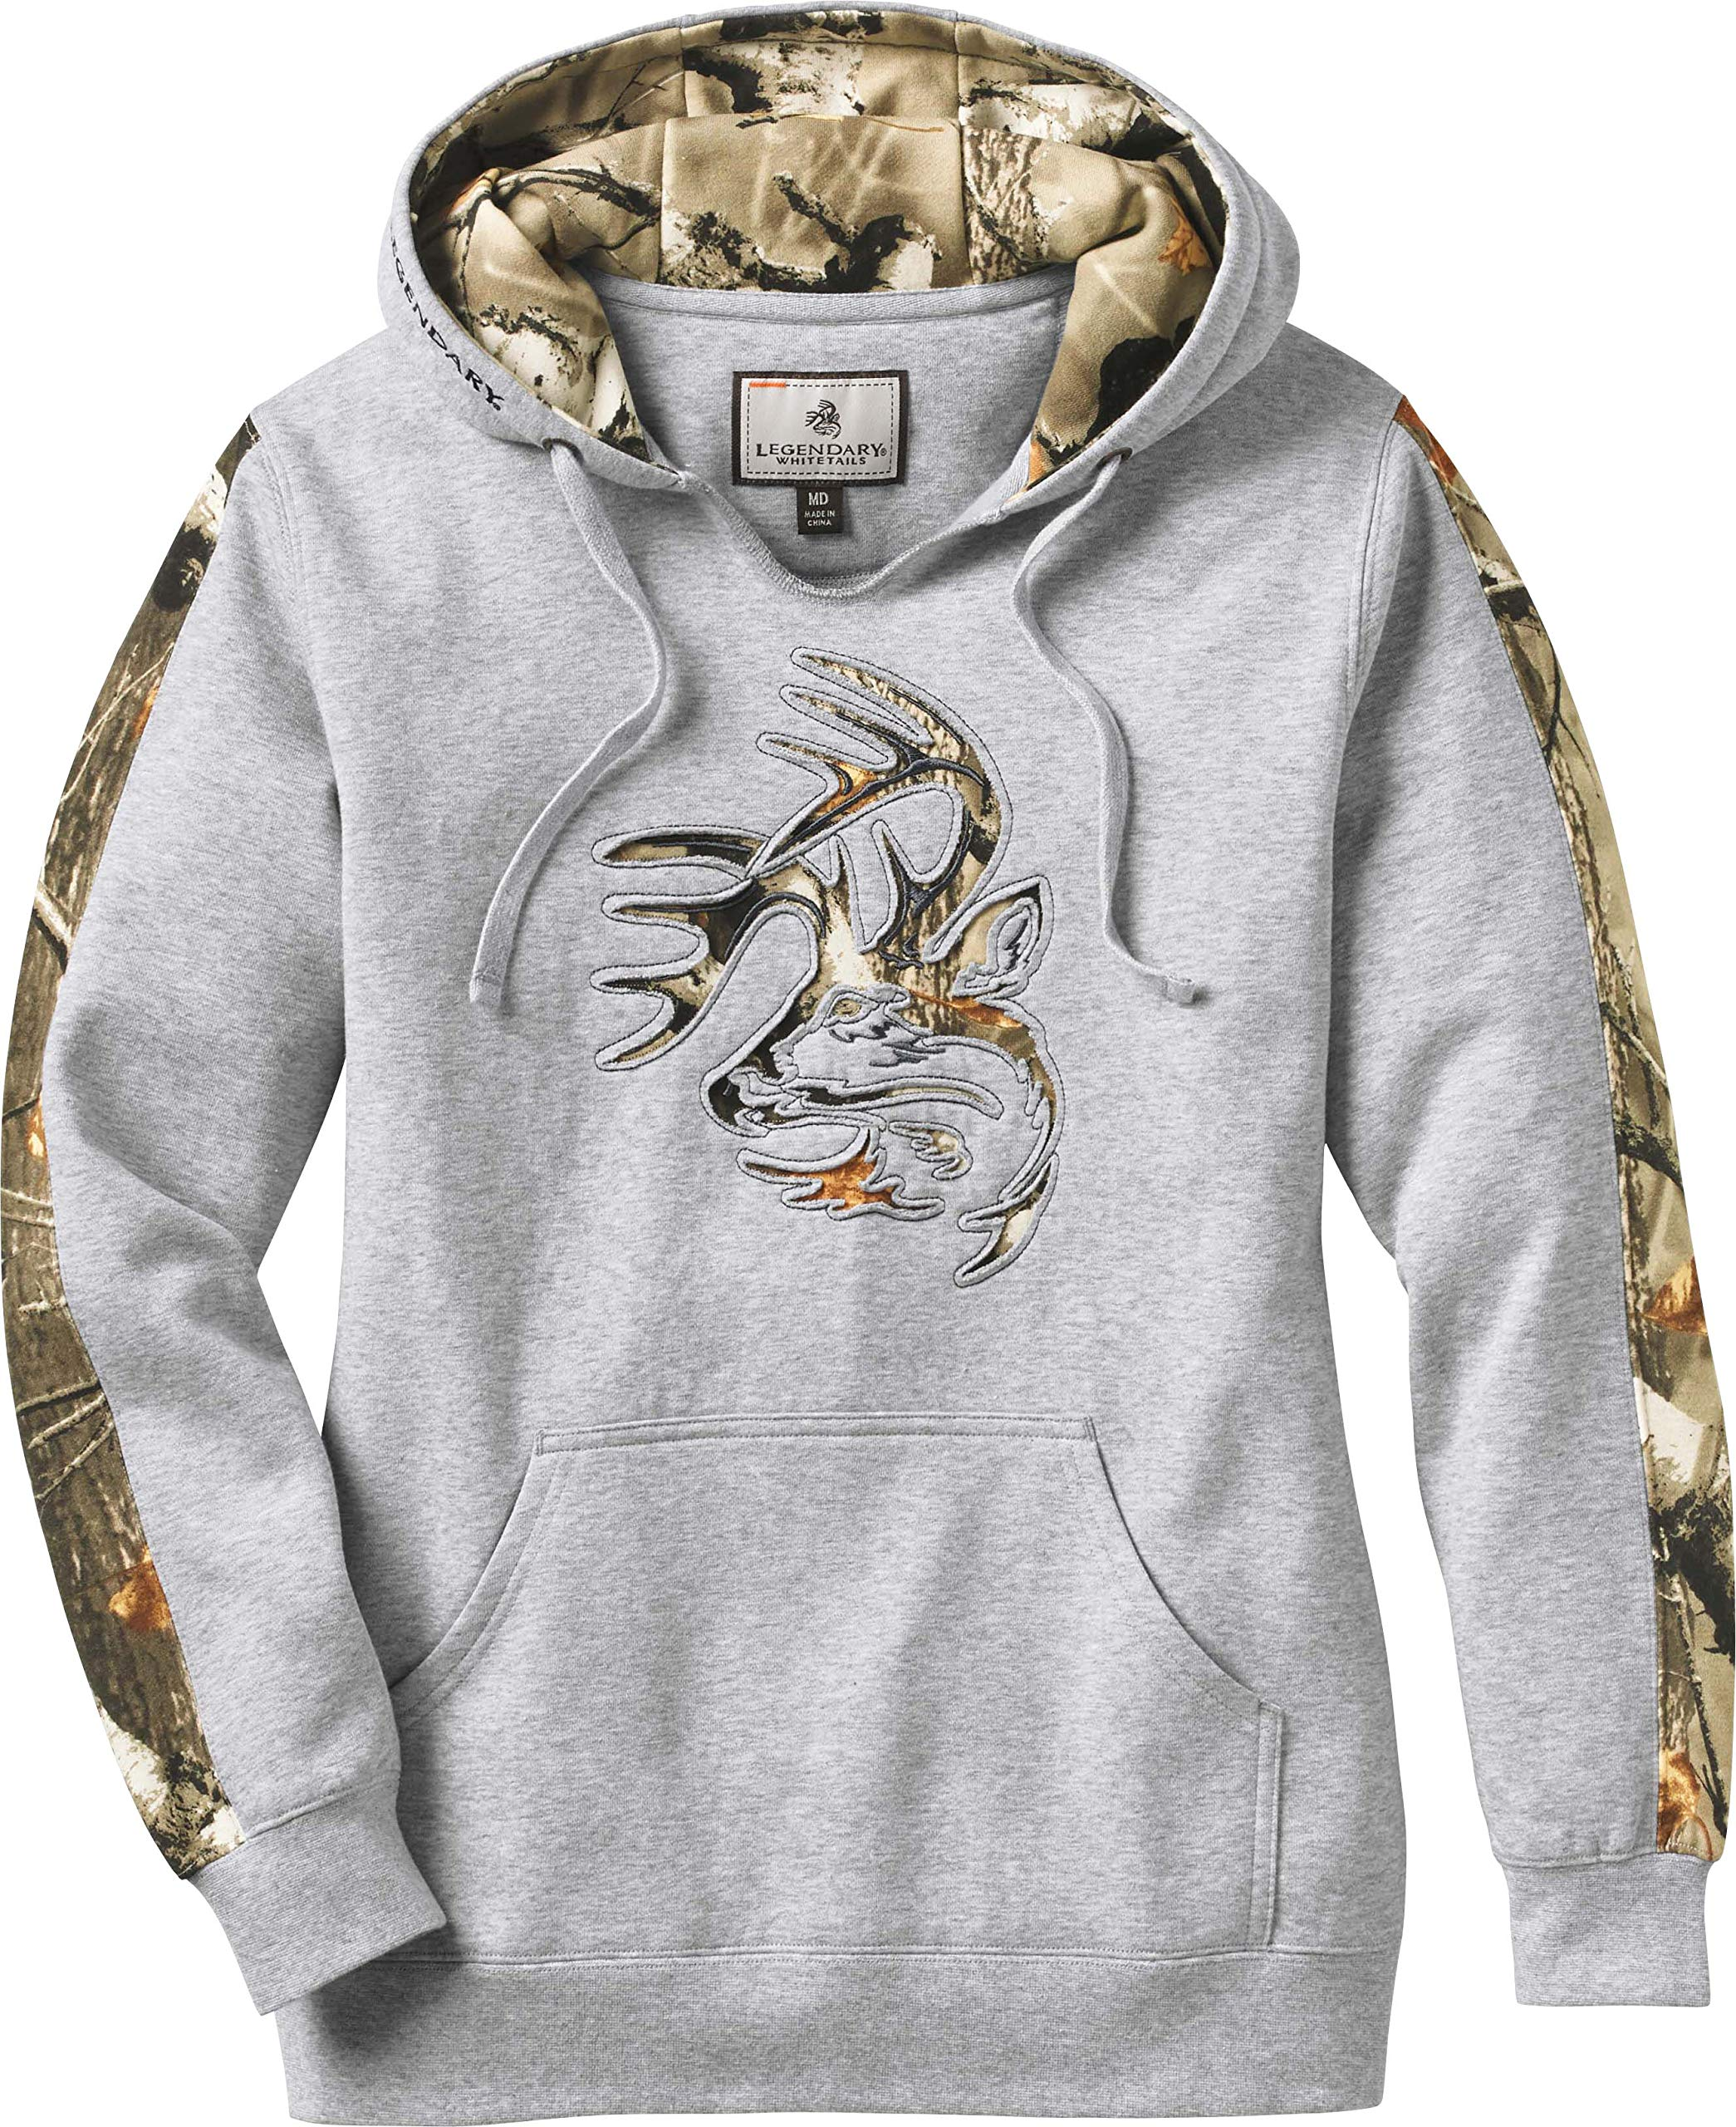 Legendary Whitetails Women's Outfitter Hoodie Athletic Heather Large by Legendary Whitetails (Image #1)